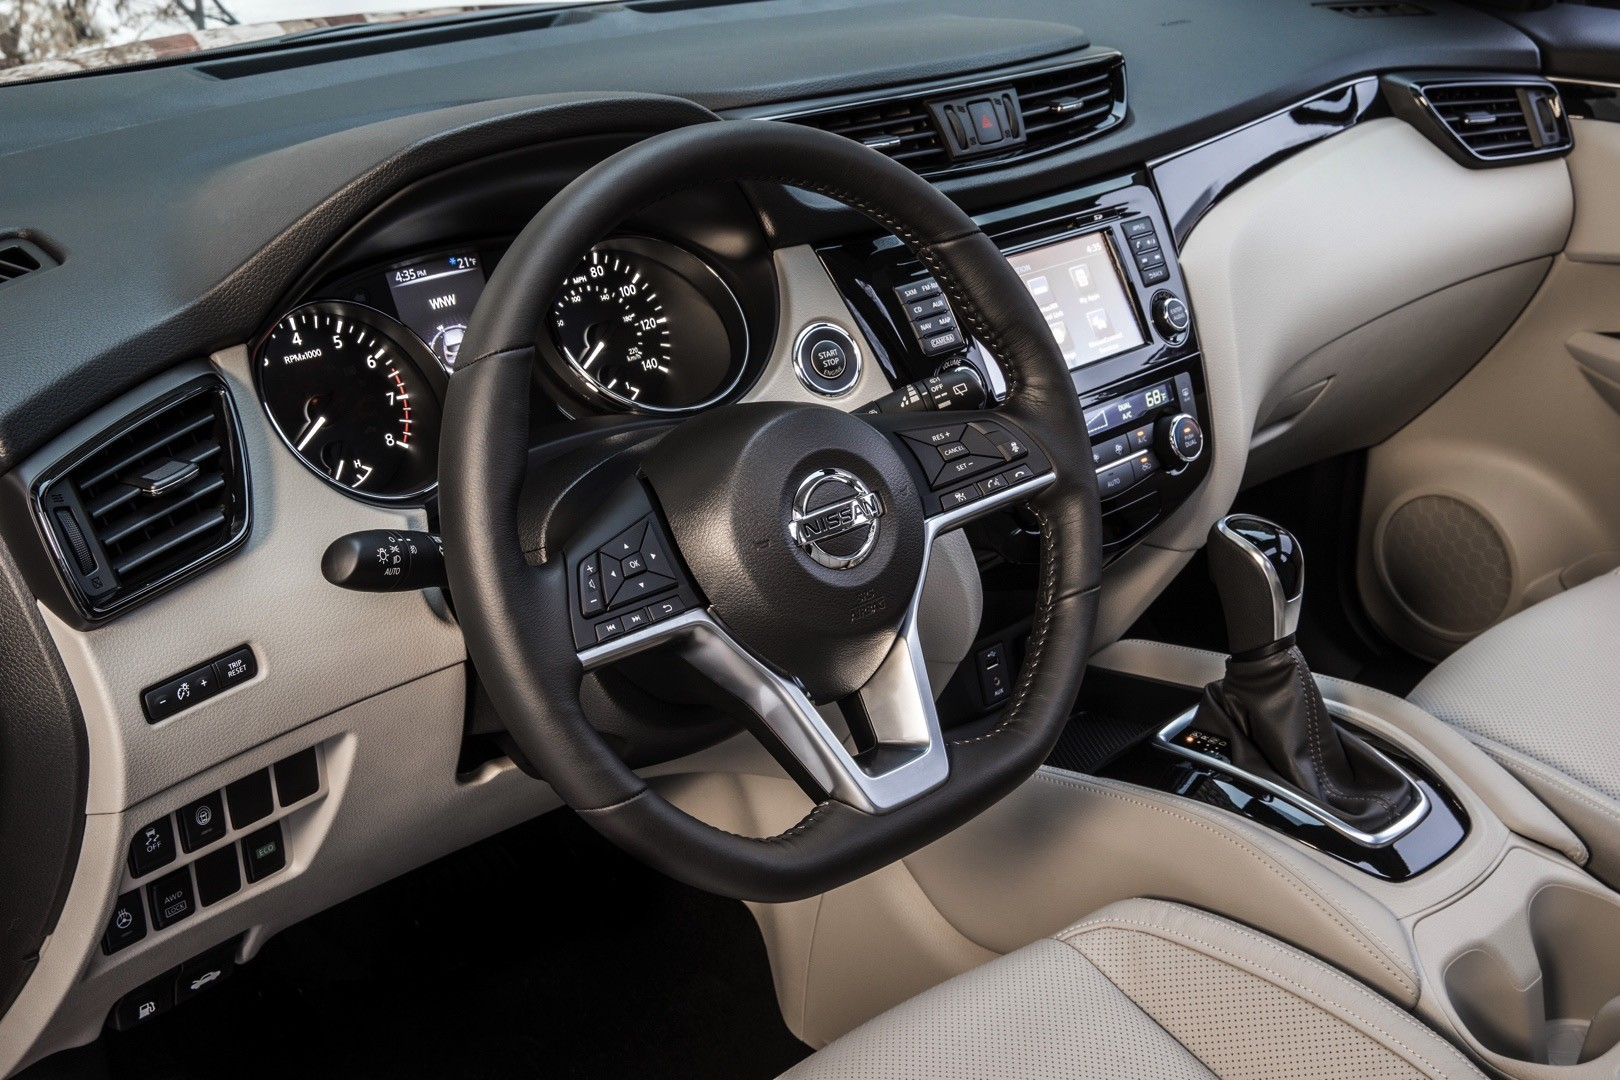 nissan prices 2017 rogue sport from 21 420 on sale in may autoevolution. Black Bedroom Furniture Sets. Home Design Ideas